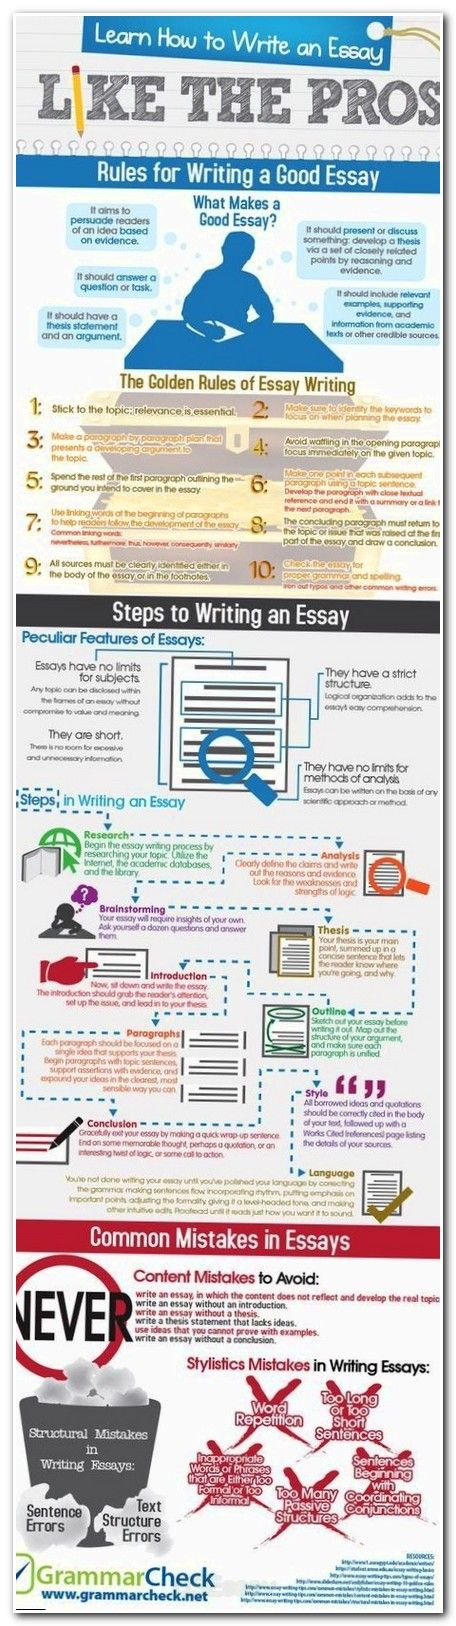 thesis argumentative essay generator Thesis generator for an argumentative essay professional essay and resume writing services offering expertise in writing cvs, resumes and cover letters customized by.